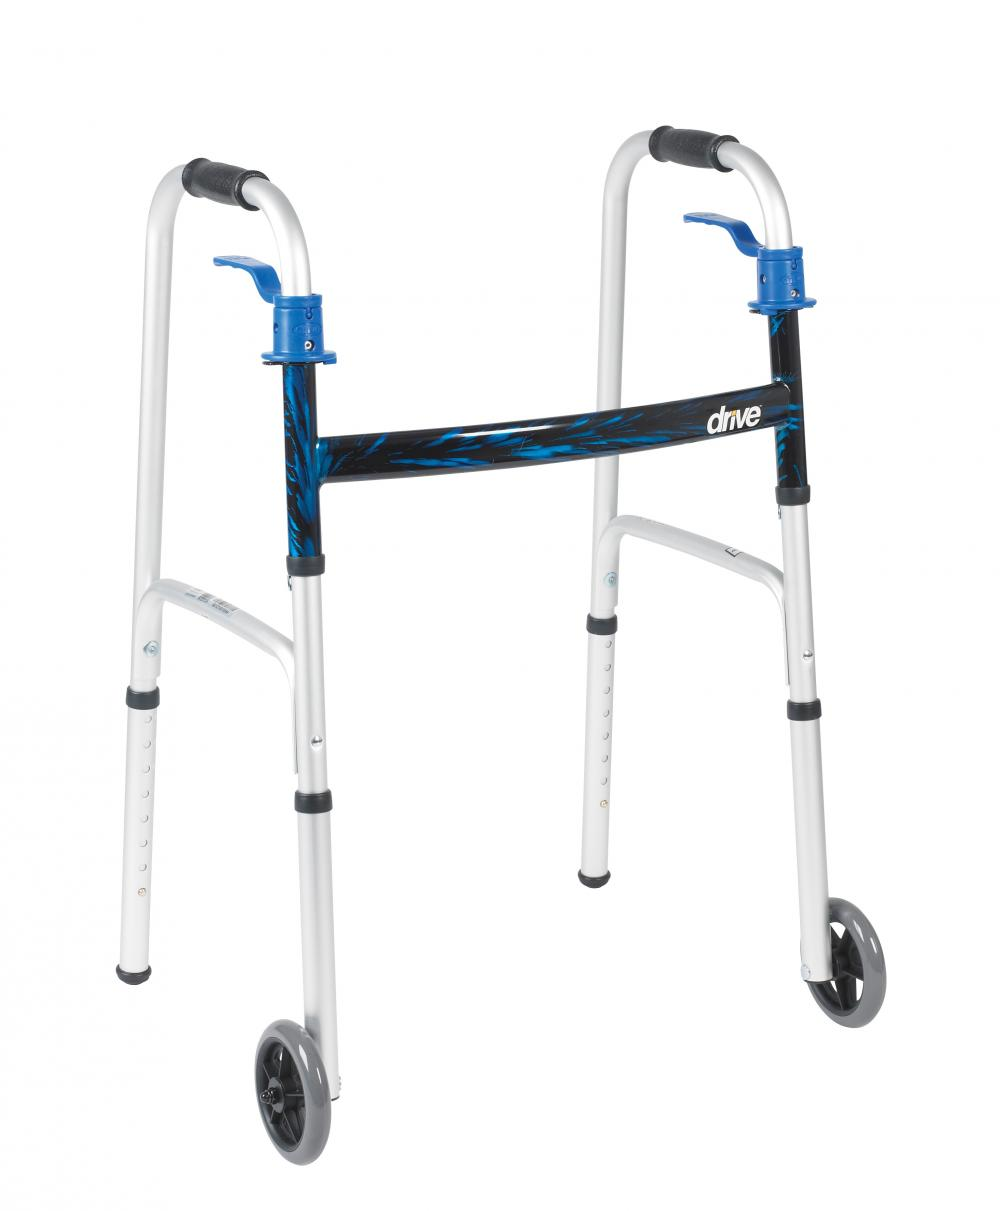 "Deluxe, Trigger Release Folding Walker with 5"" Wheels (4 pack)"